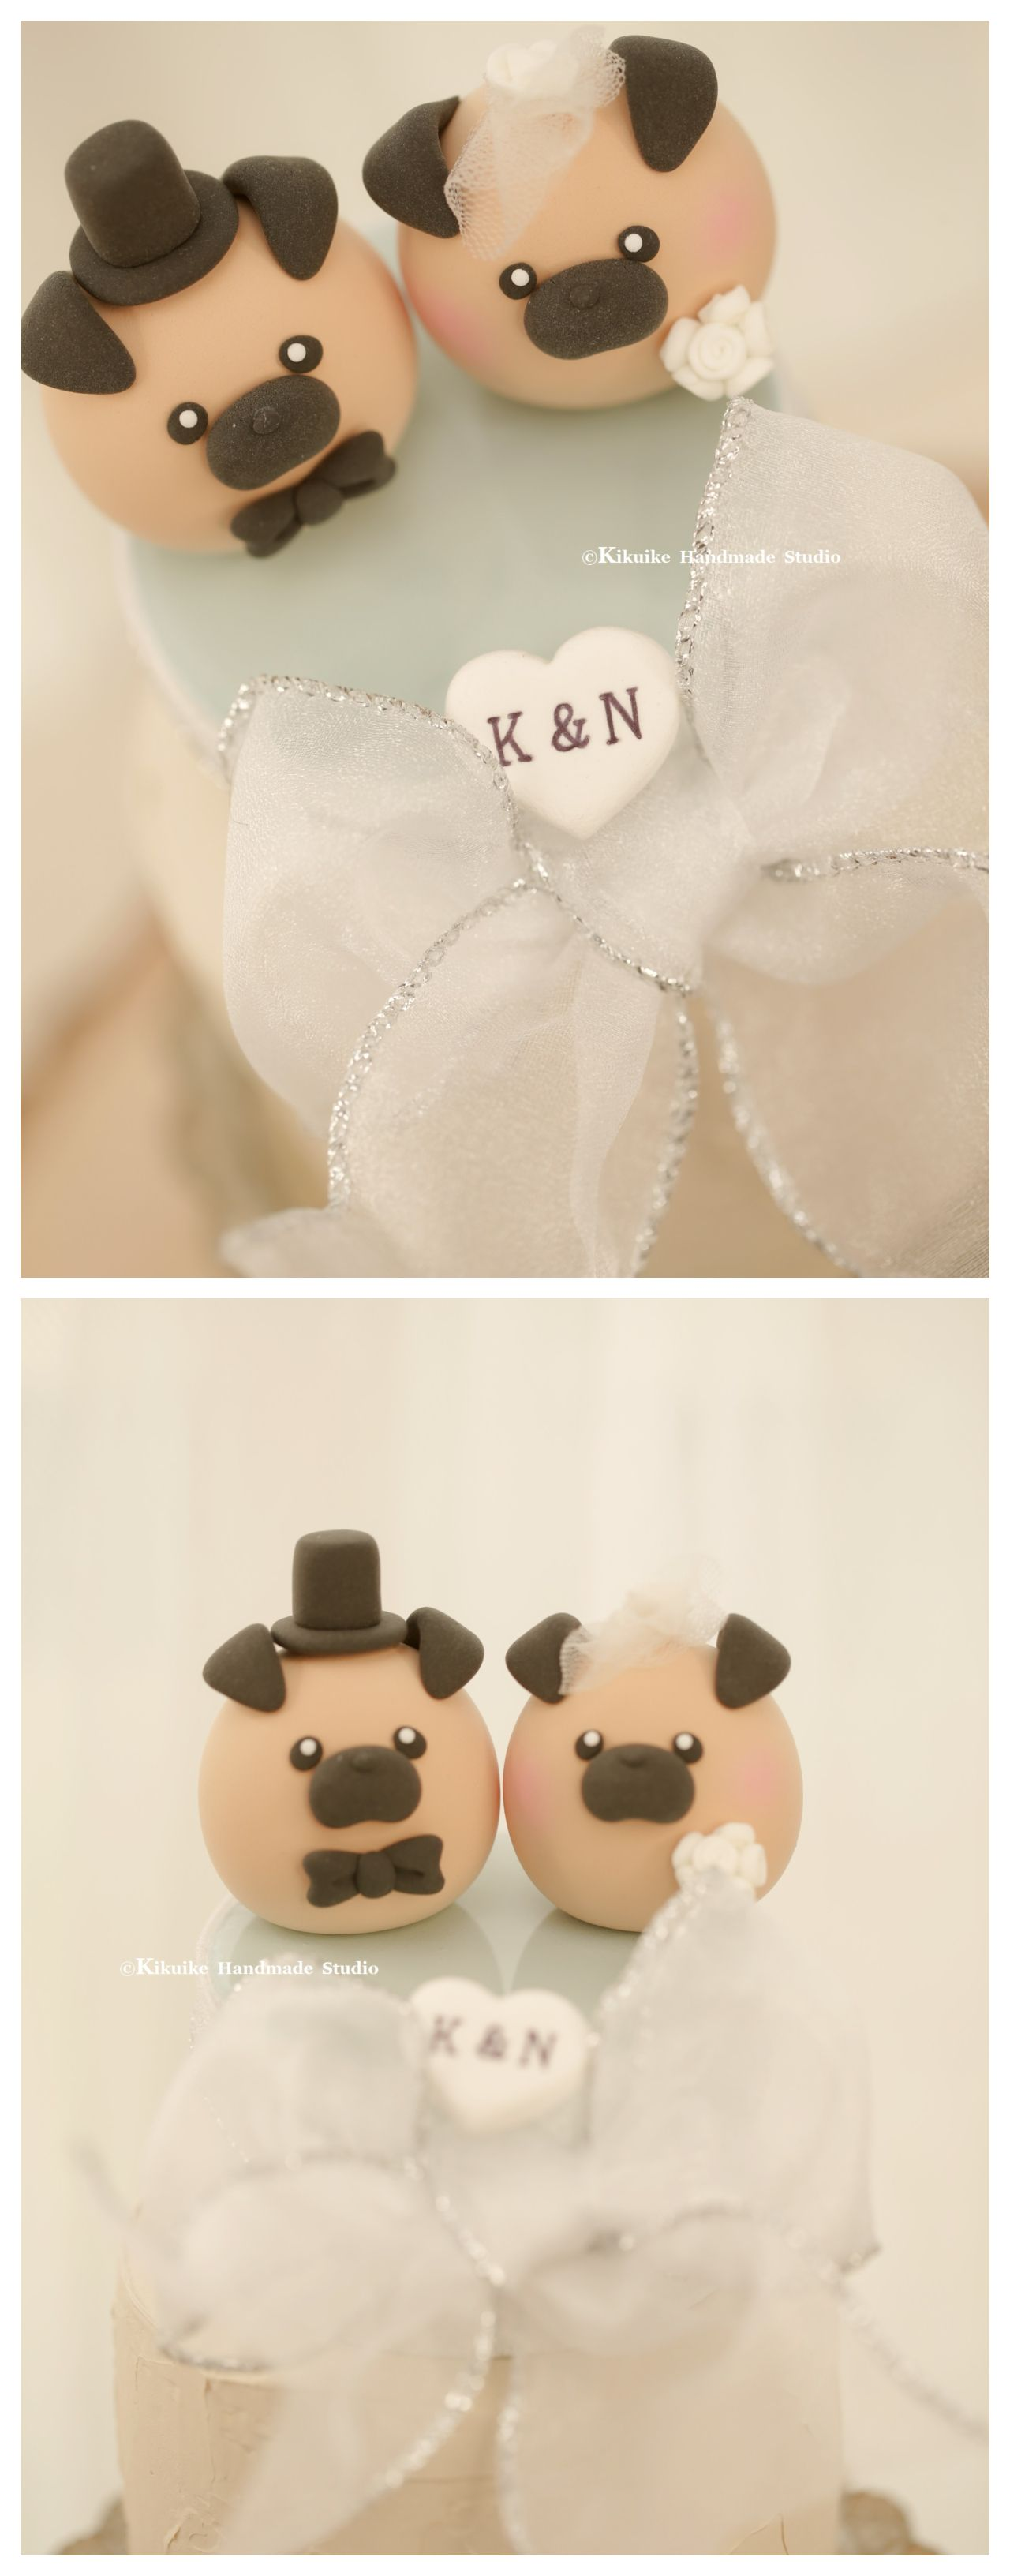 Pug and chiwawa chihuahua wedding cake topper mochiegg cake